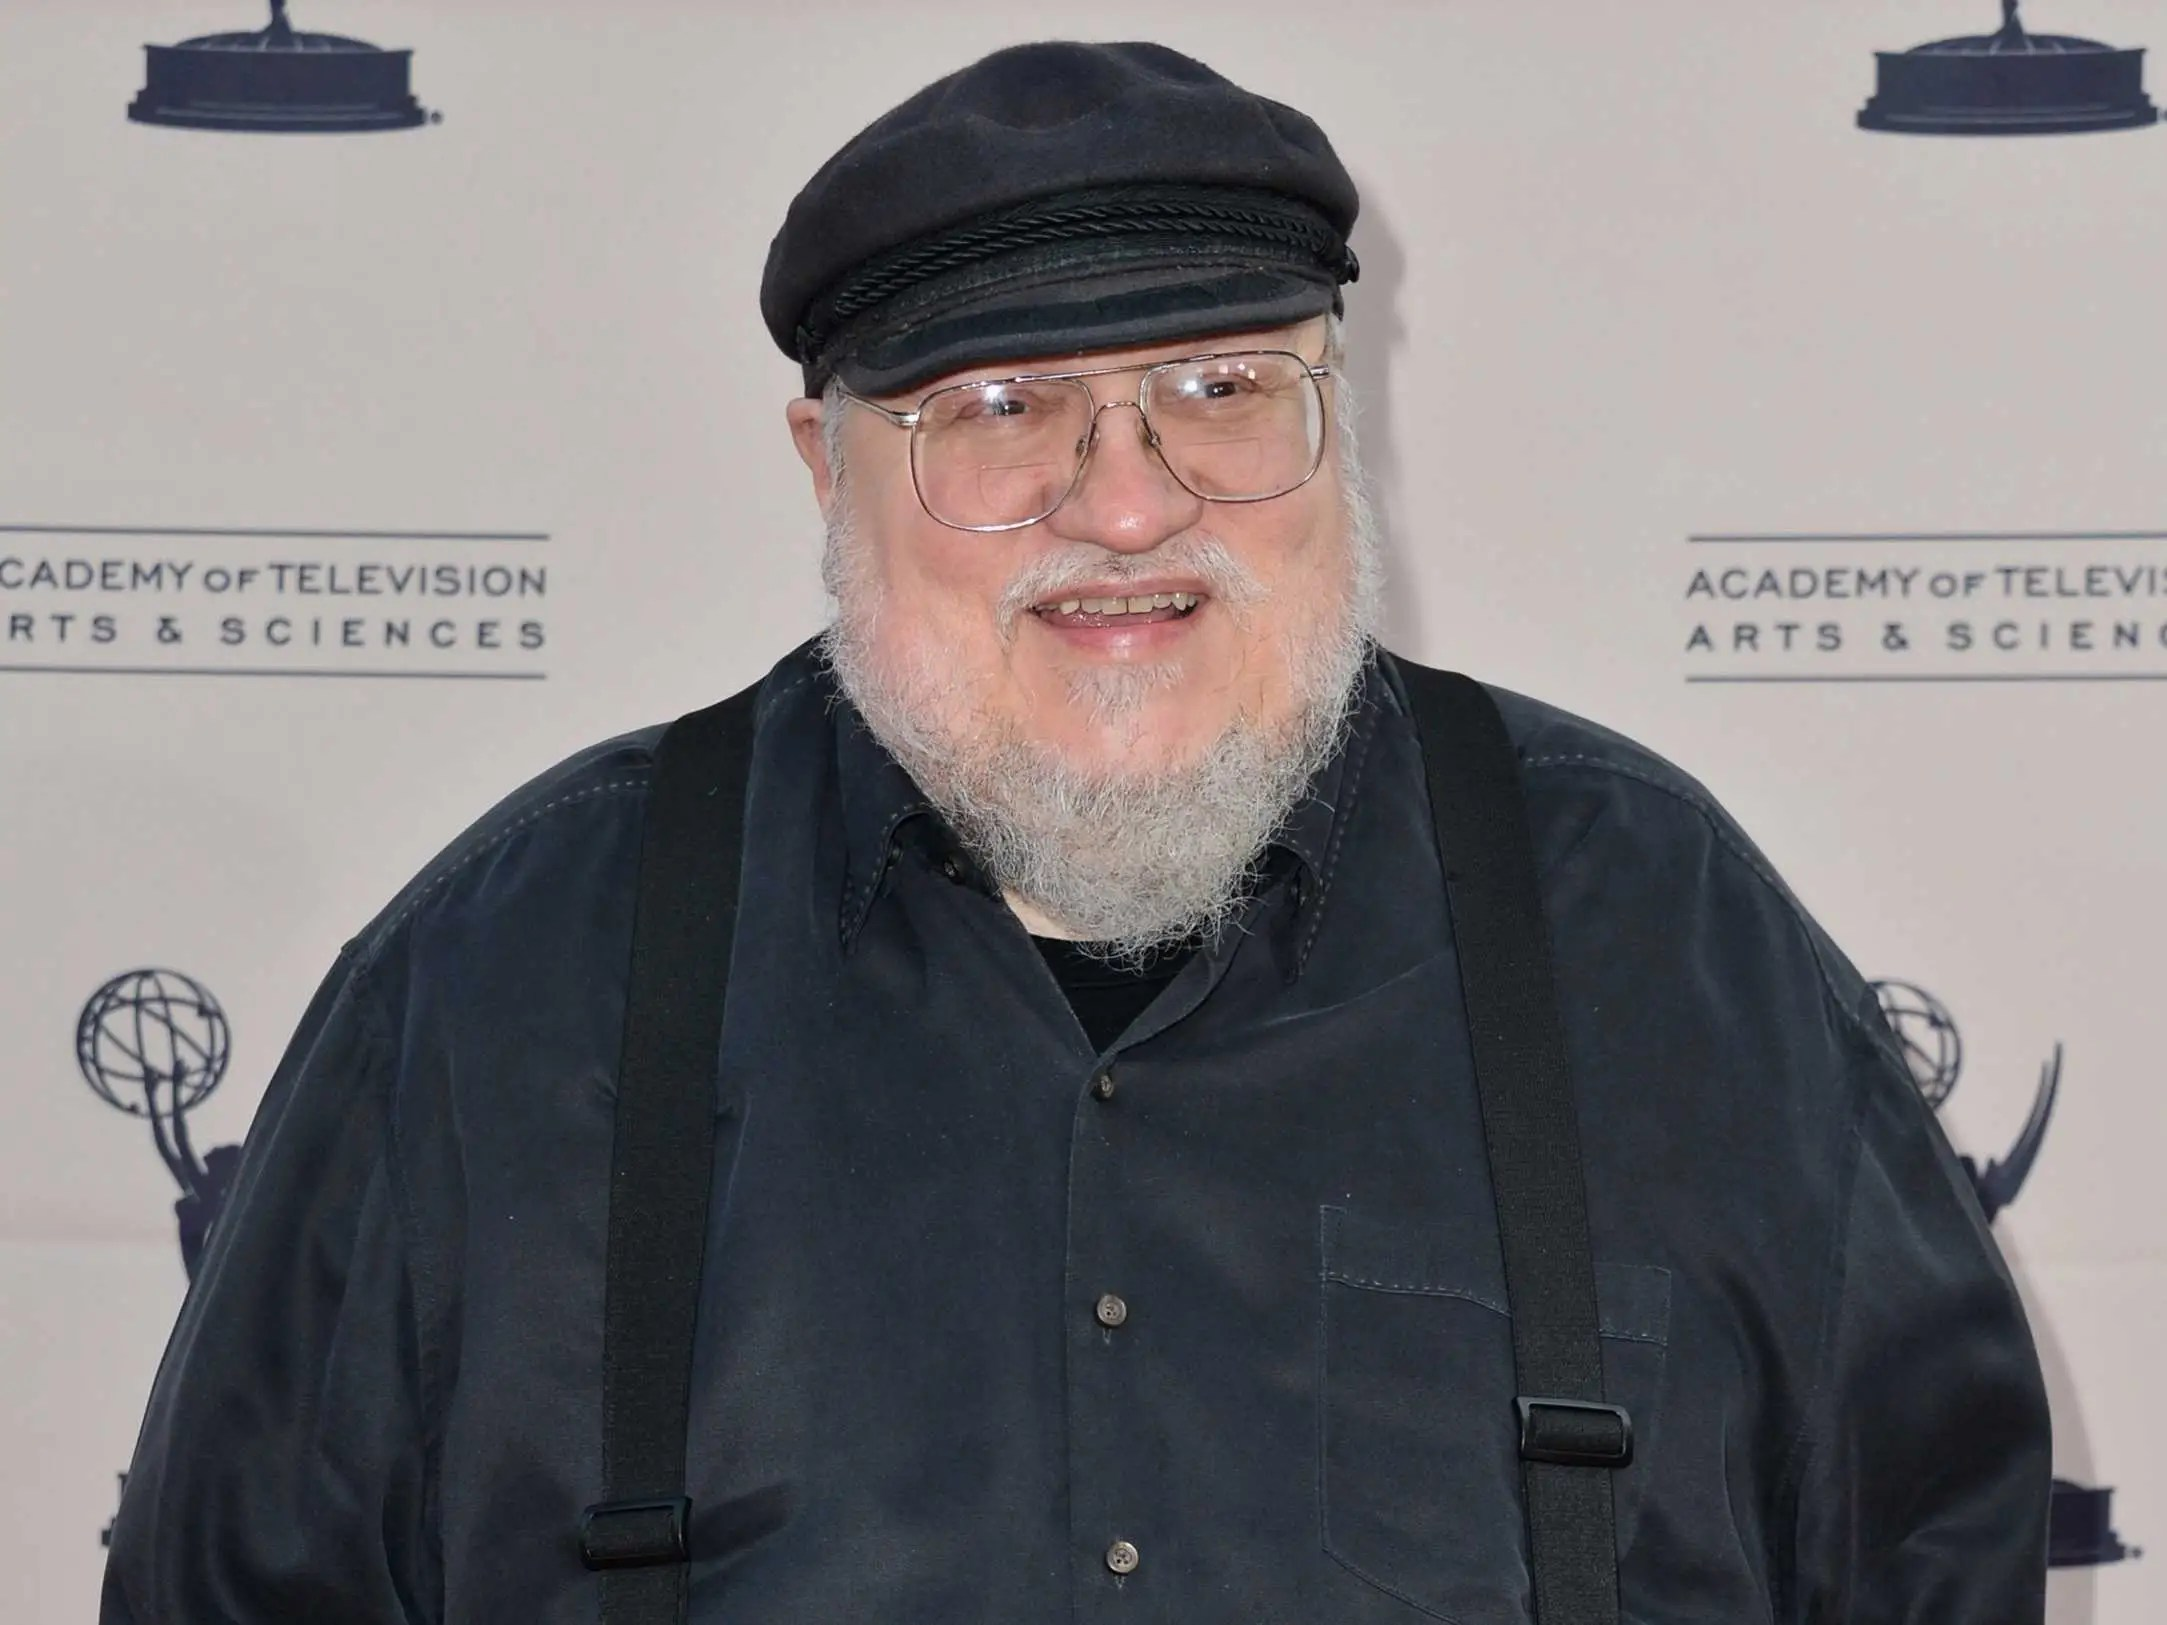 George Rr Martin Libros Game Of Thrones 39game Of Thrones 39 Creator George R R Martin Gave Away A